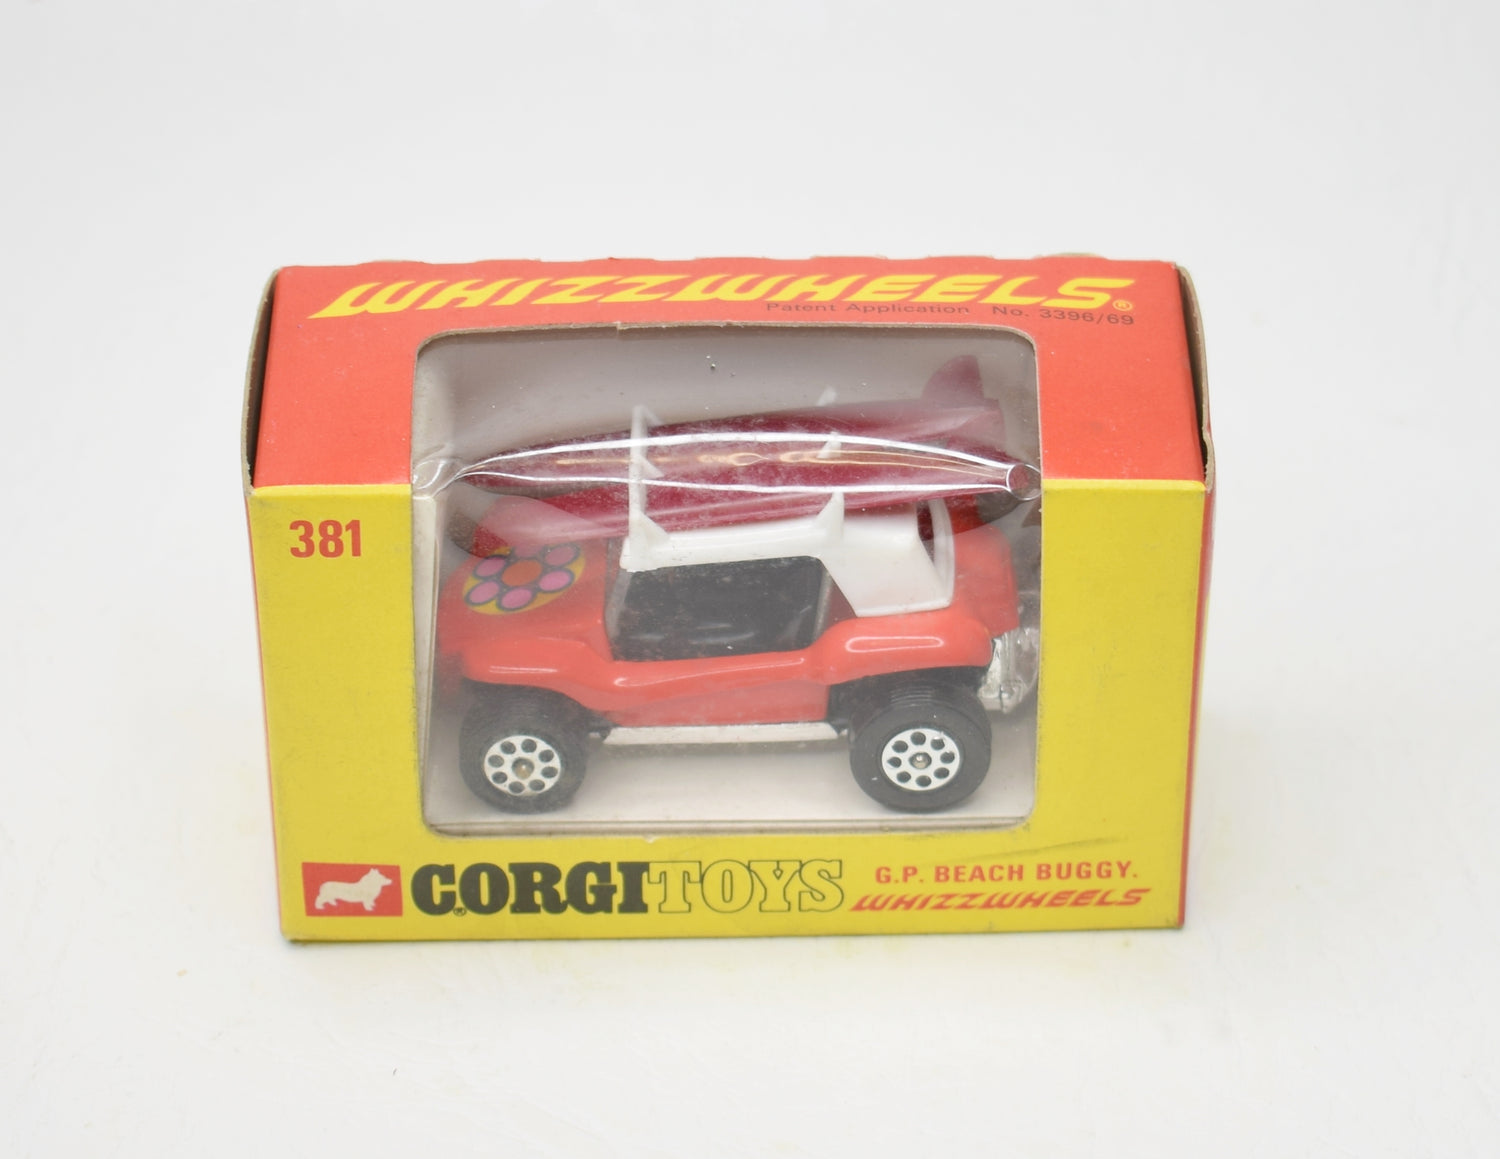 Corgi toys 381 G.P Beach Buggy Mint/Boxed